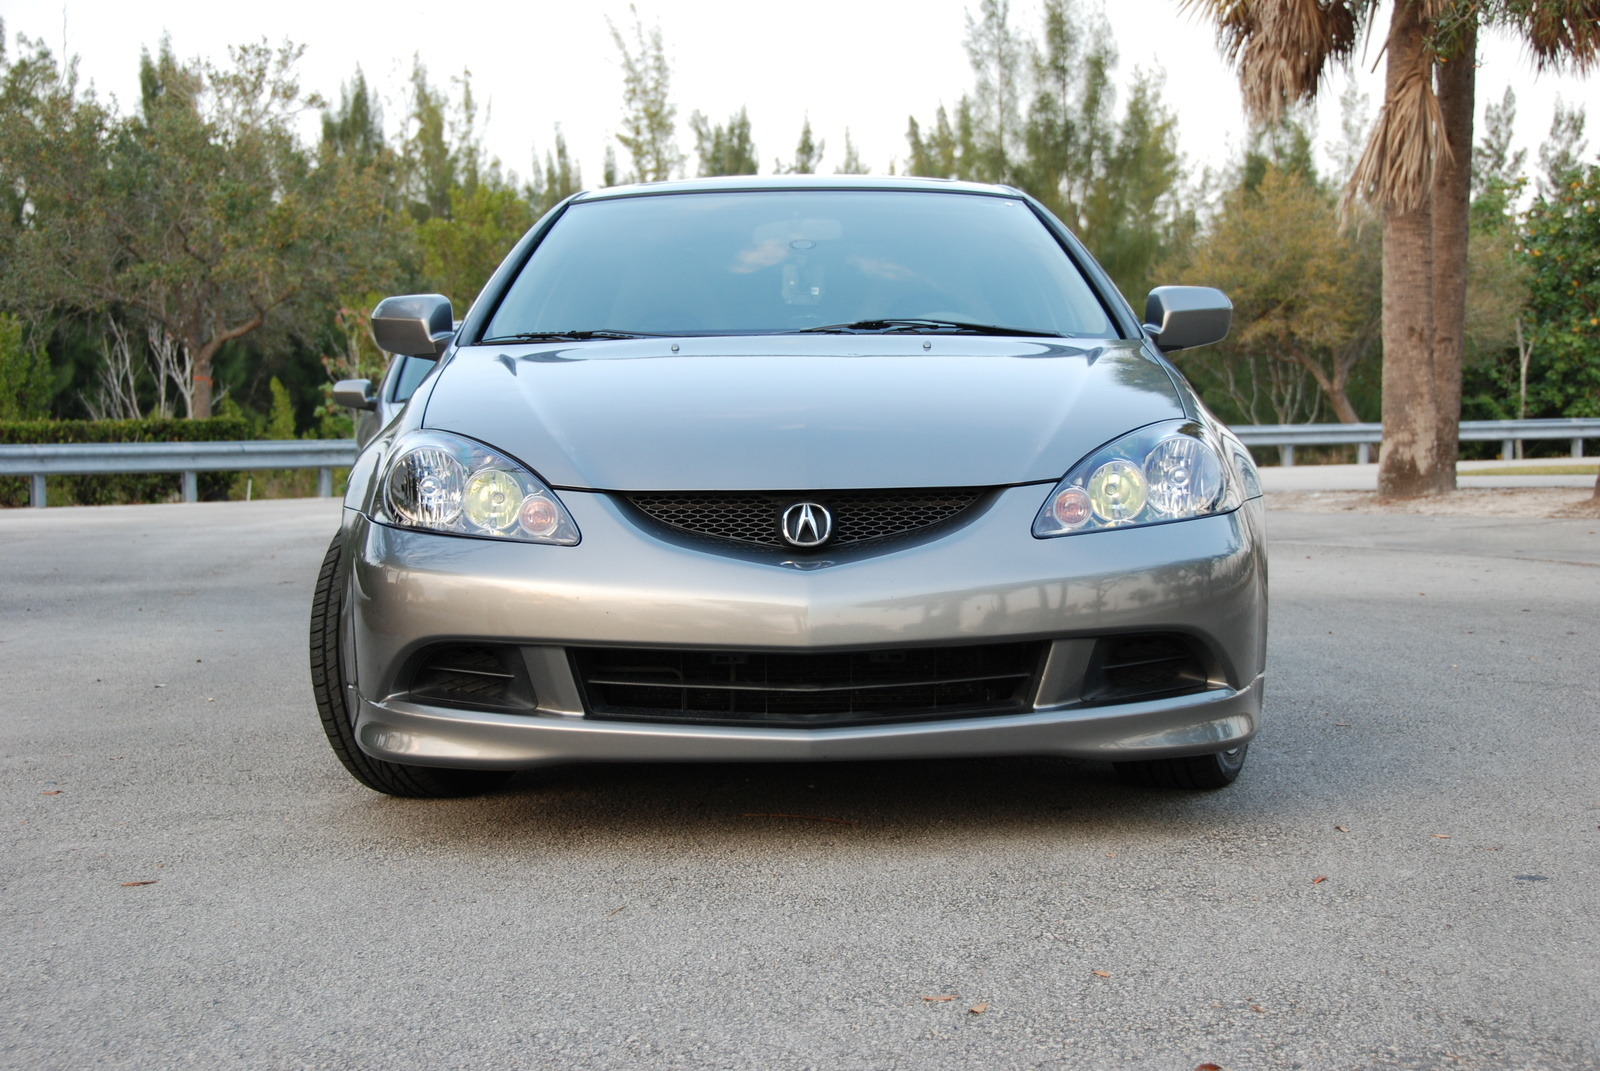 2005 acura rsx type s picture exterior. Black Bedroom Furniture Sets. Home Design Ideas